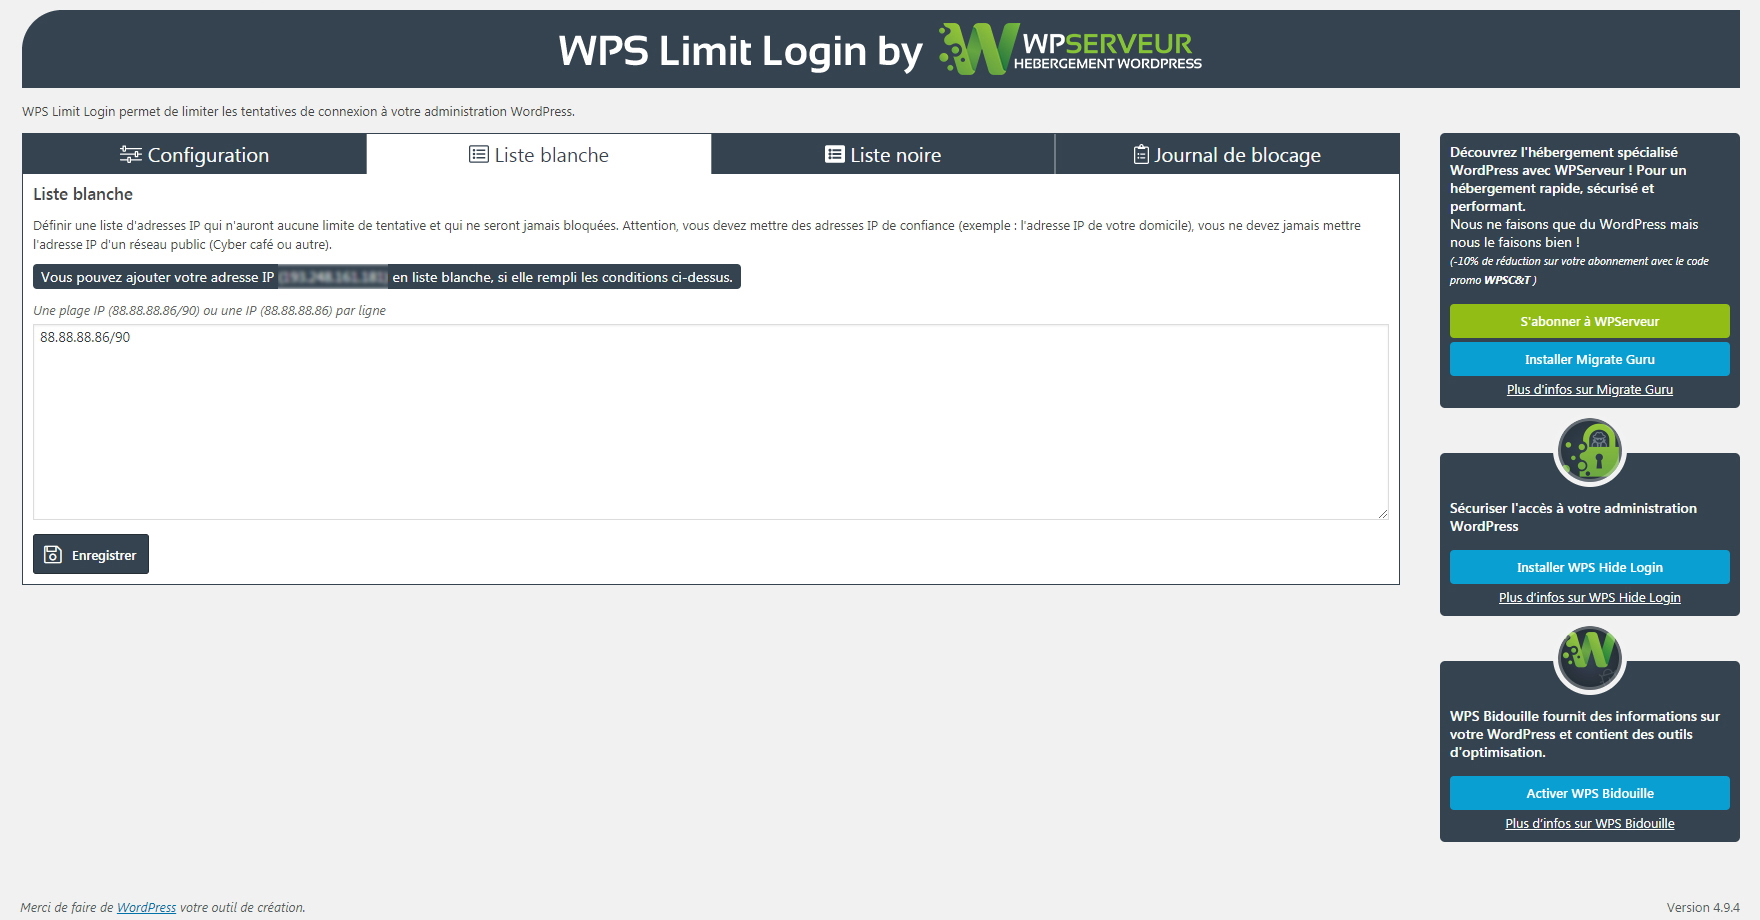 WPS Limit Login